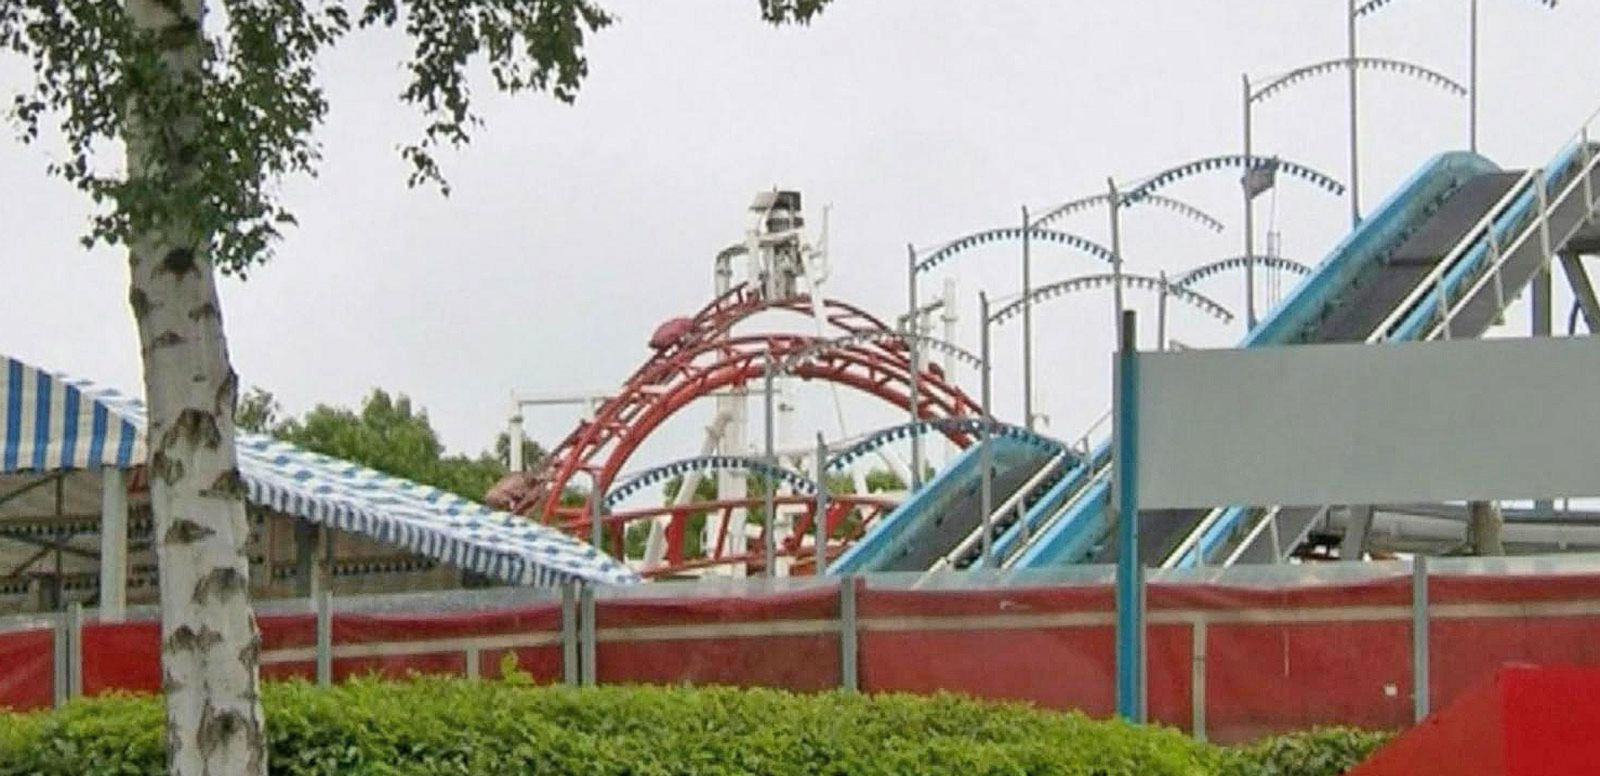 VIDEO: Rollercoaster Jumps Track, Injures 10 People